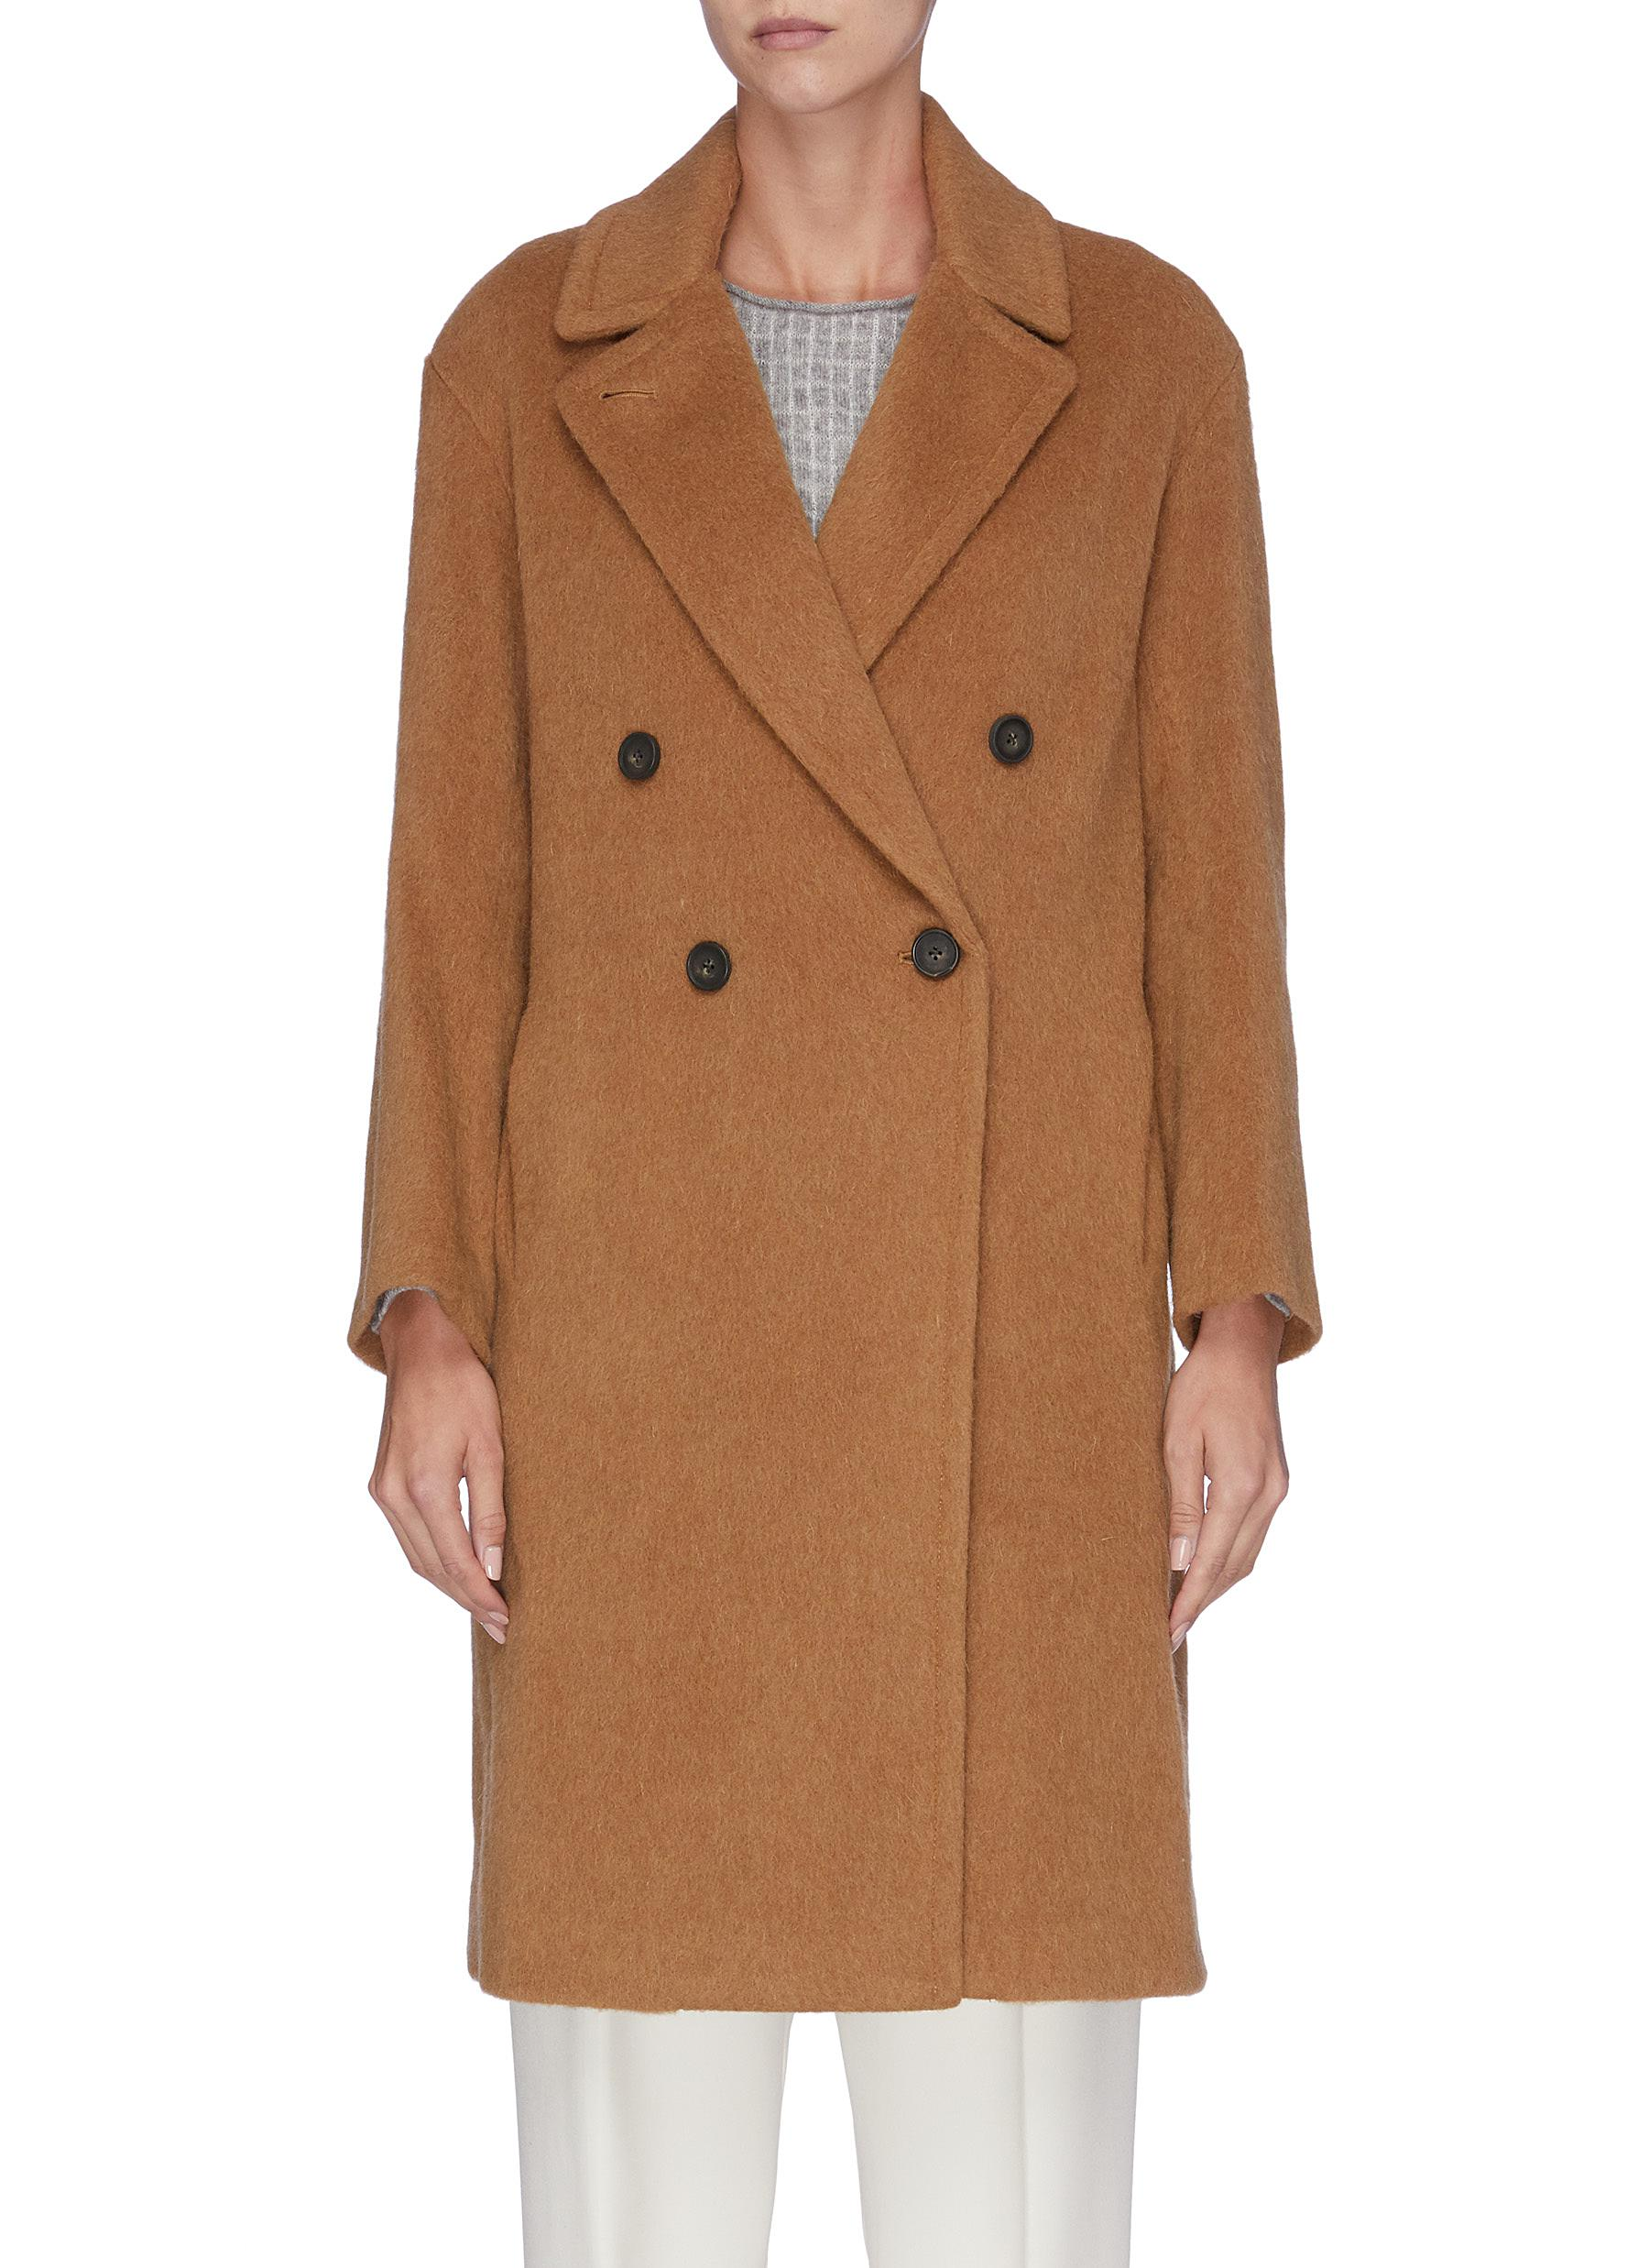 Wool blend double-breasted coat by Vince